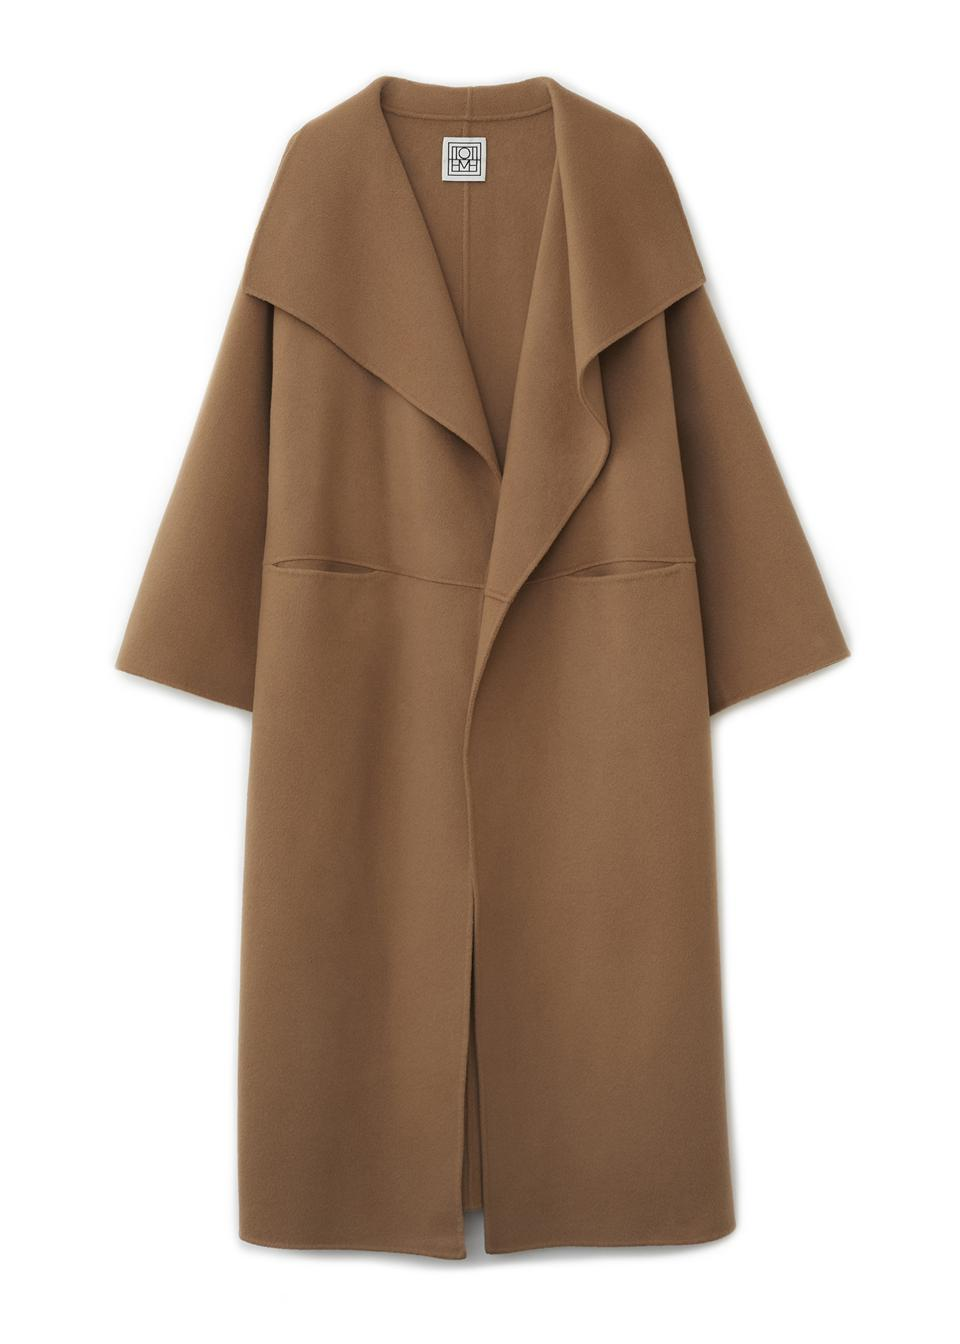 The Totême Annecy coat